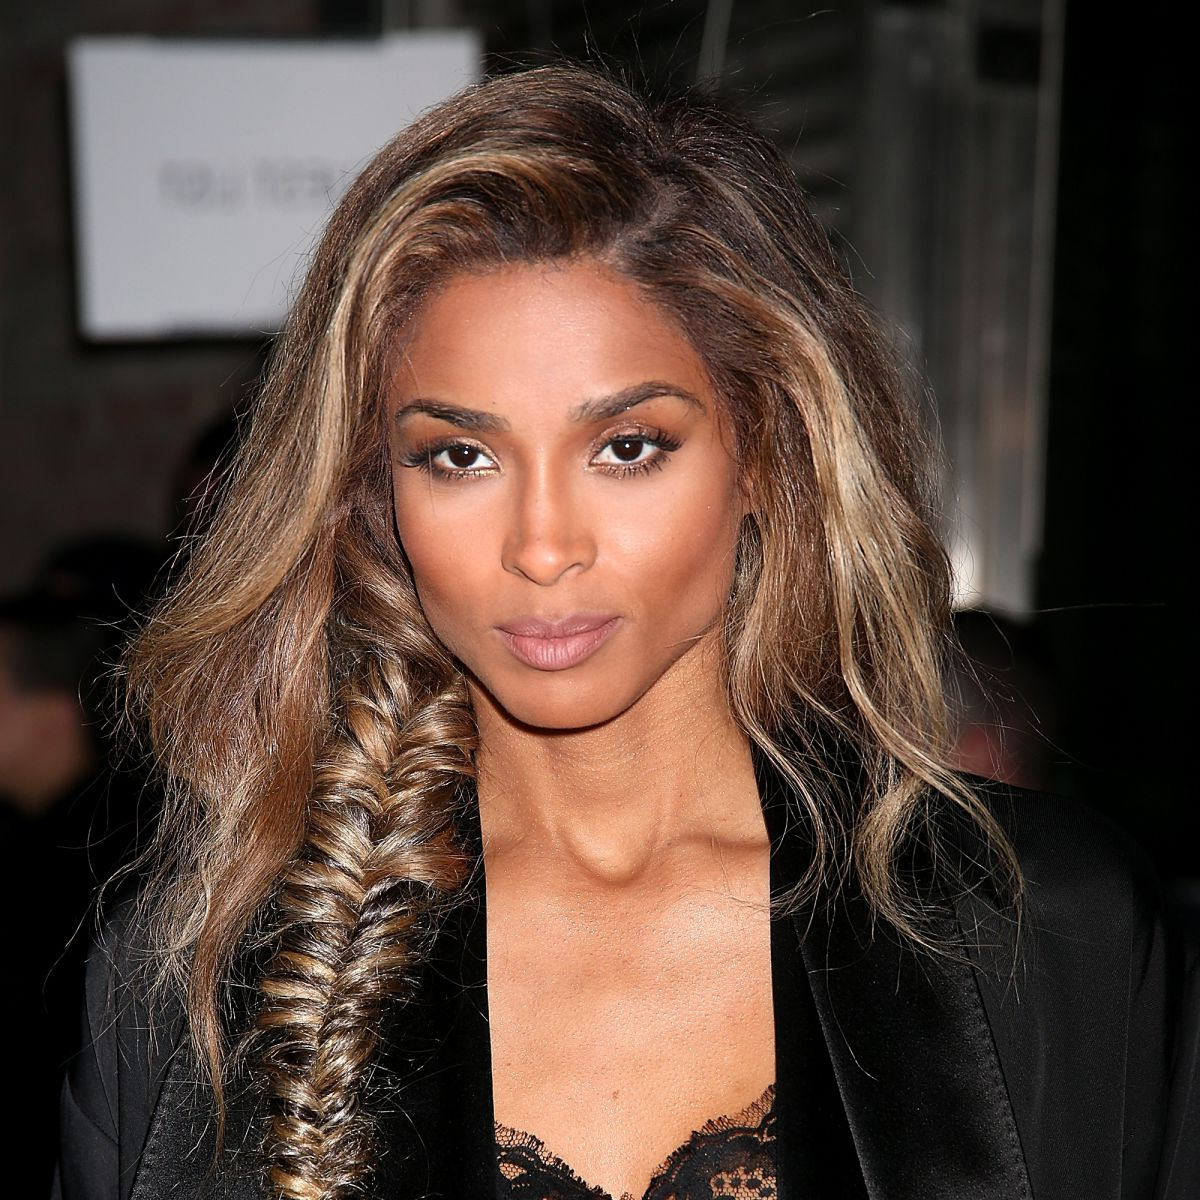 Paris Fashion Week: Ciara's Messy Fishtail Braid At Givenchy Pertaining To Most Up To Date Messy Fishtail Hairstyles For Oblong Faces (View 20 of 20)